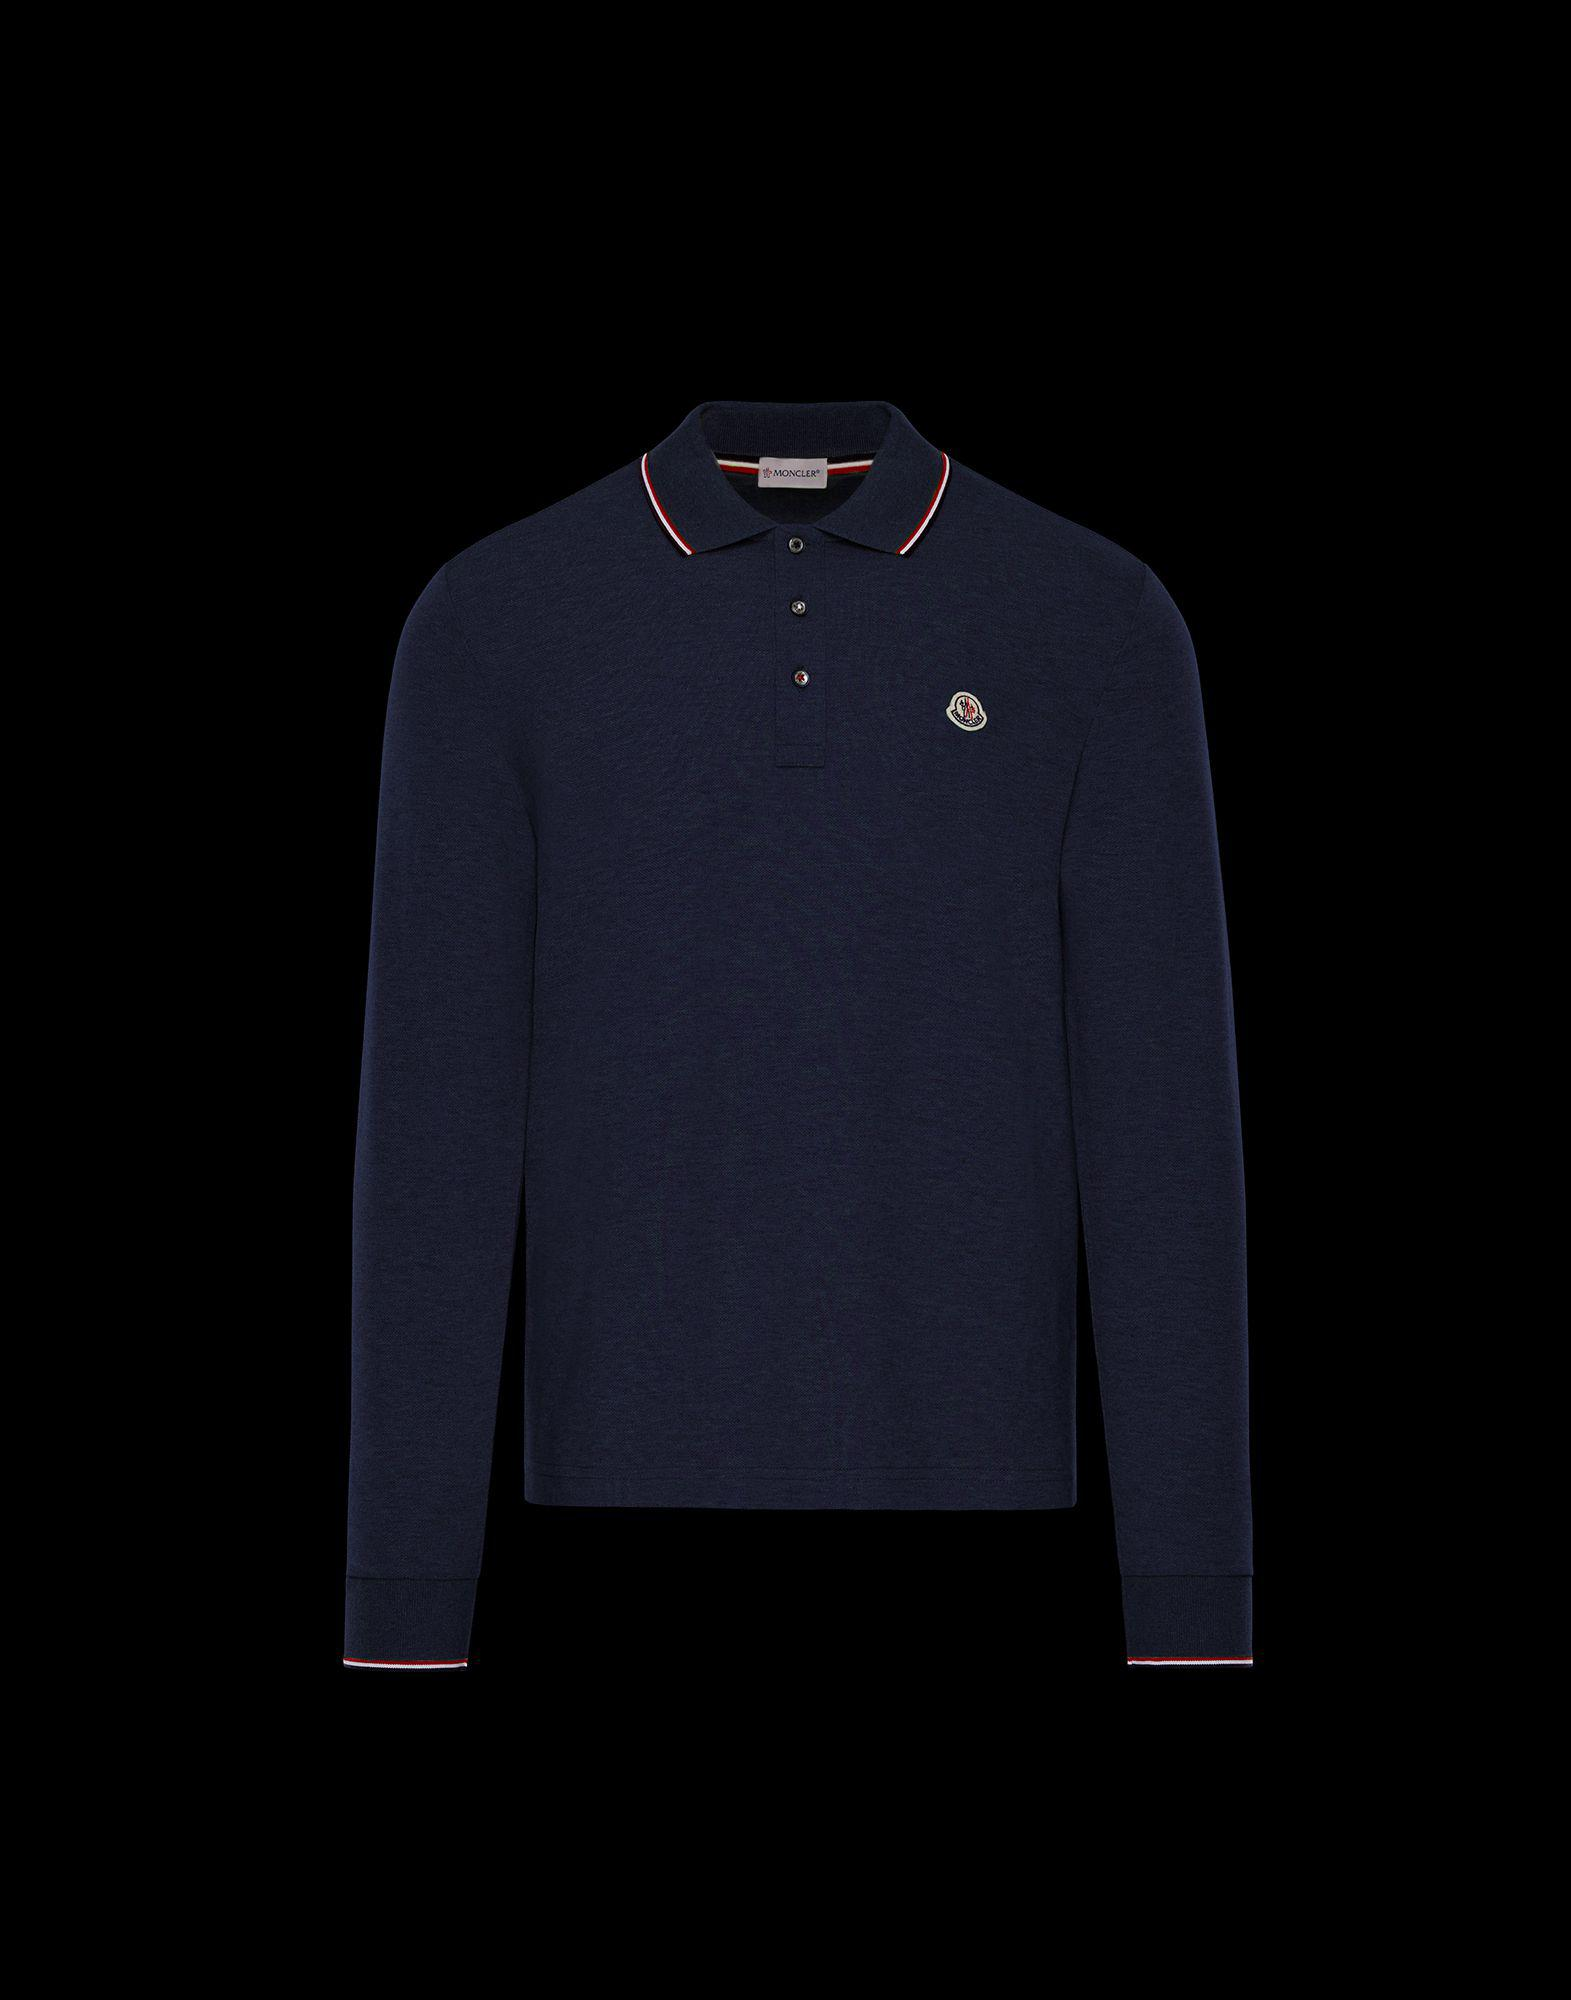 7789fa3c7adc Moncler Polo Shirt in Blue for Men - Lyst